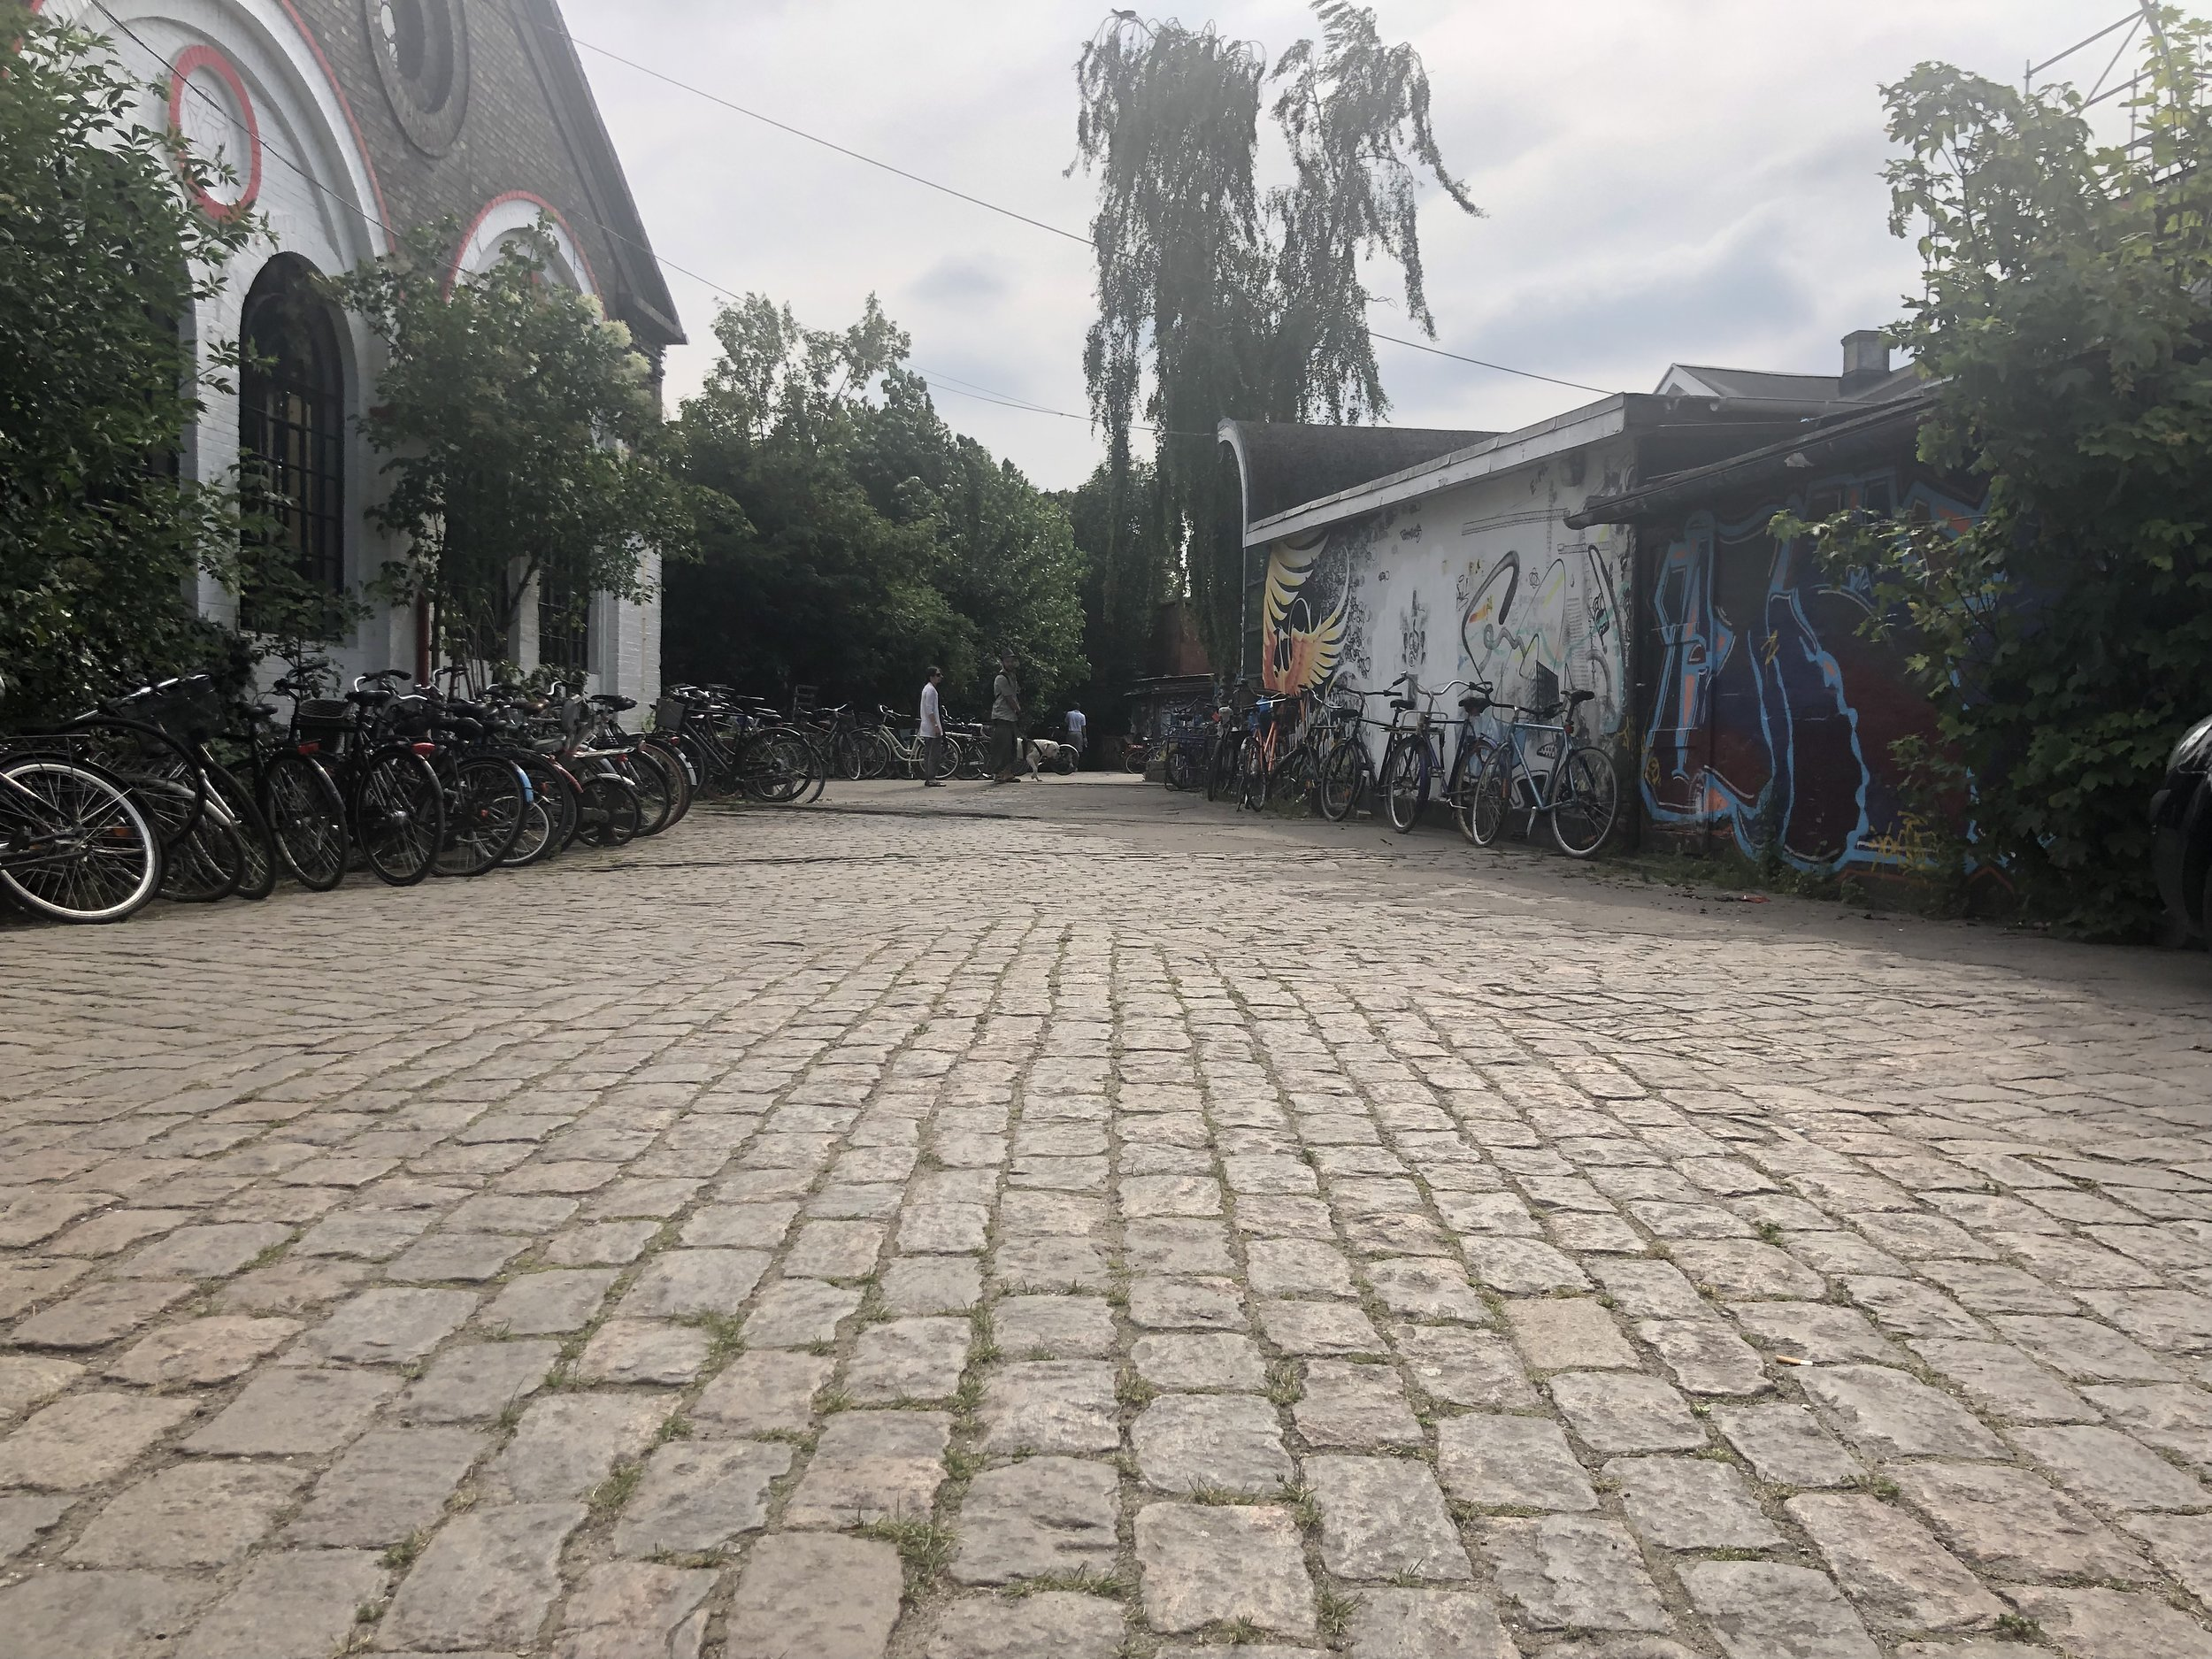 Entrance into Freetown, a section of Copenhagen, where the property owners have established their own government and rules. In Freetown it is legal to sell marijuana, but illegal to take picture beyond this point.